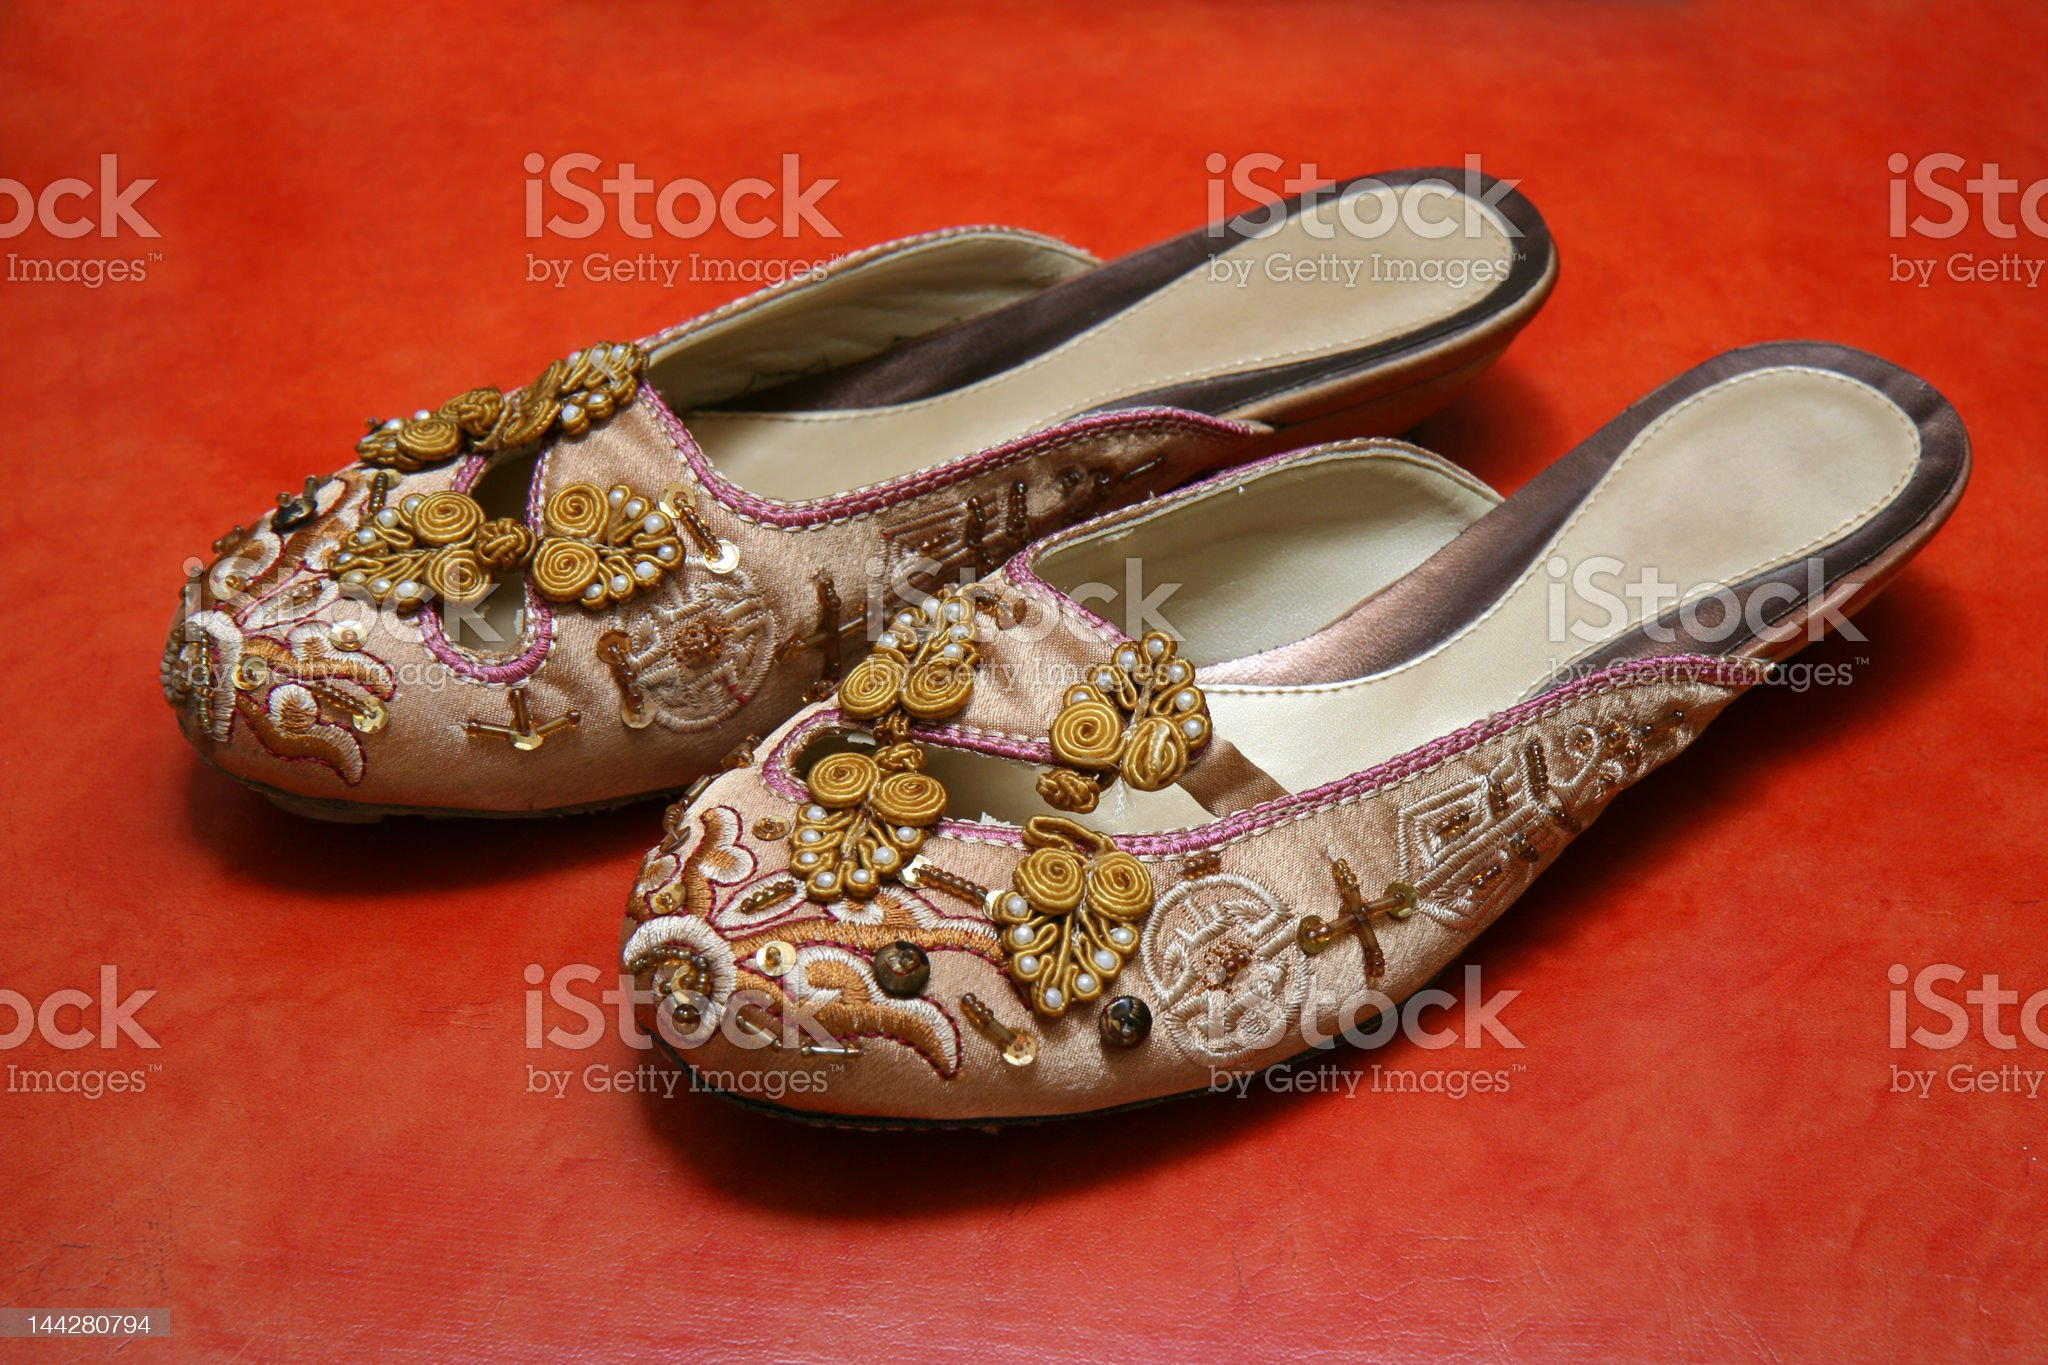 Exquisite Ladies Shoes royalty-free stock photo